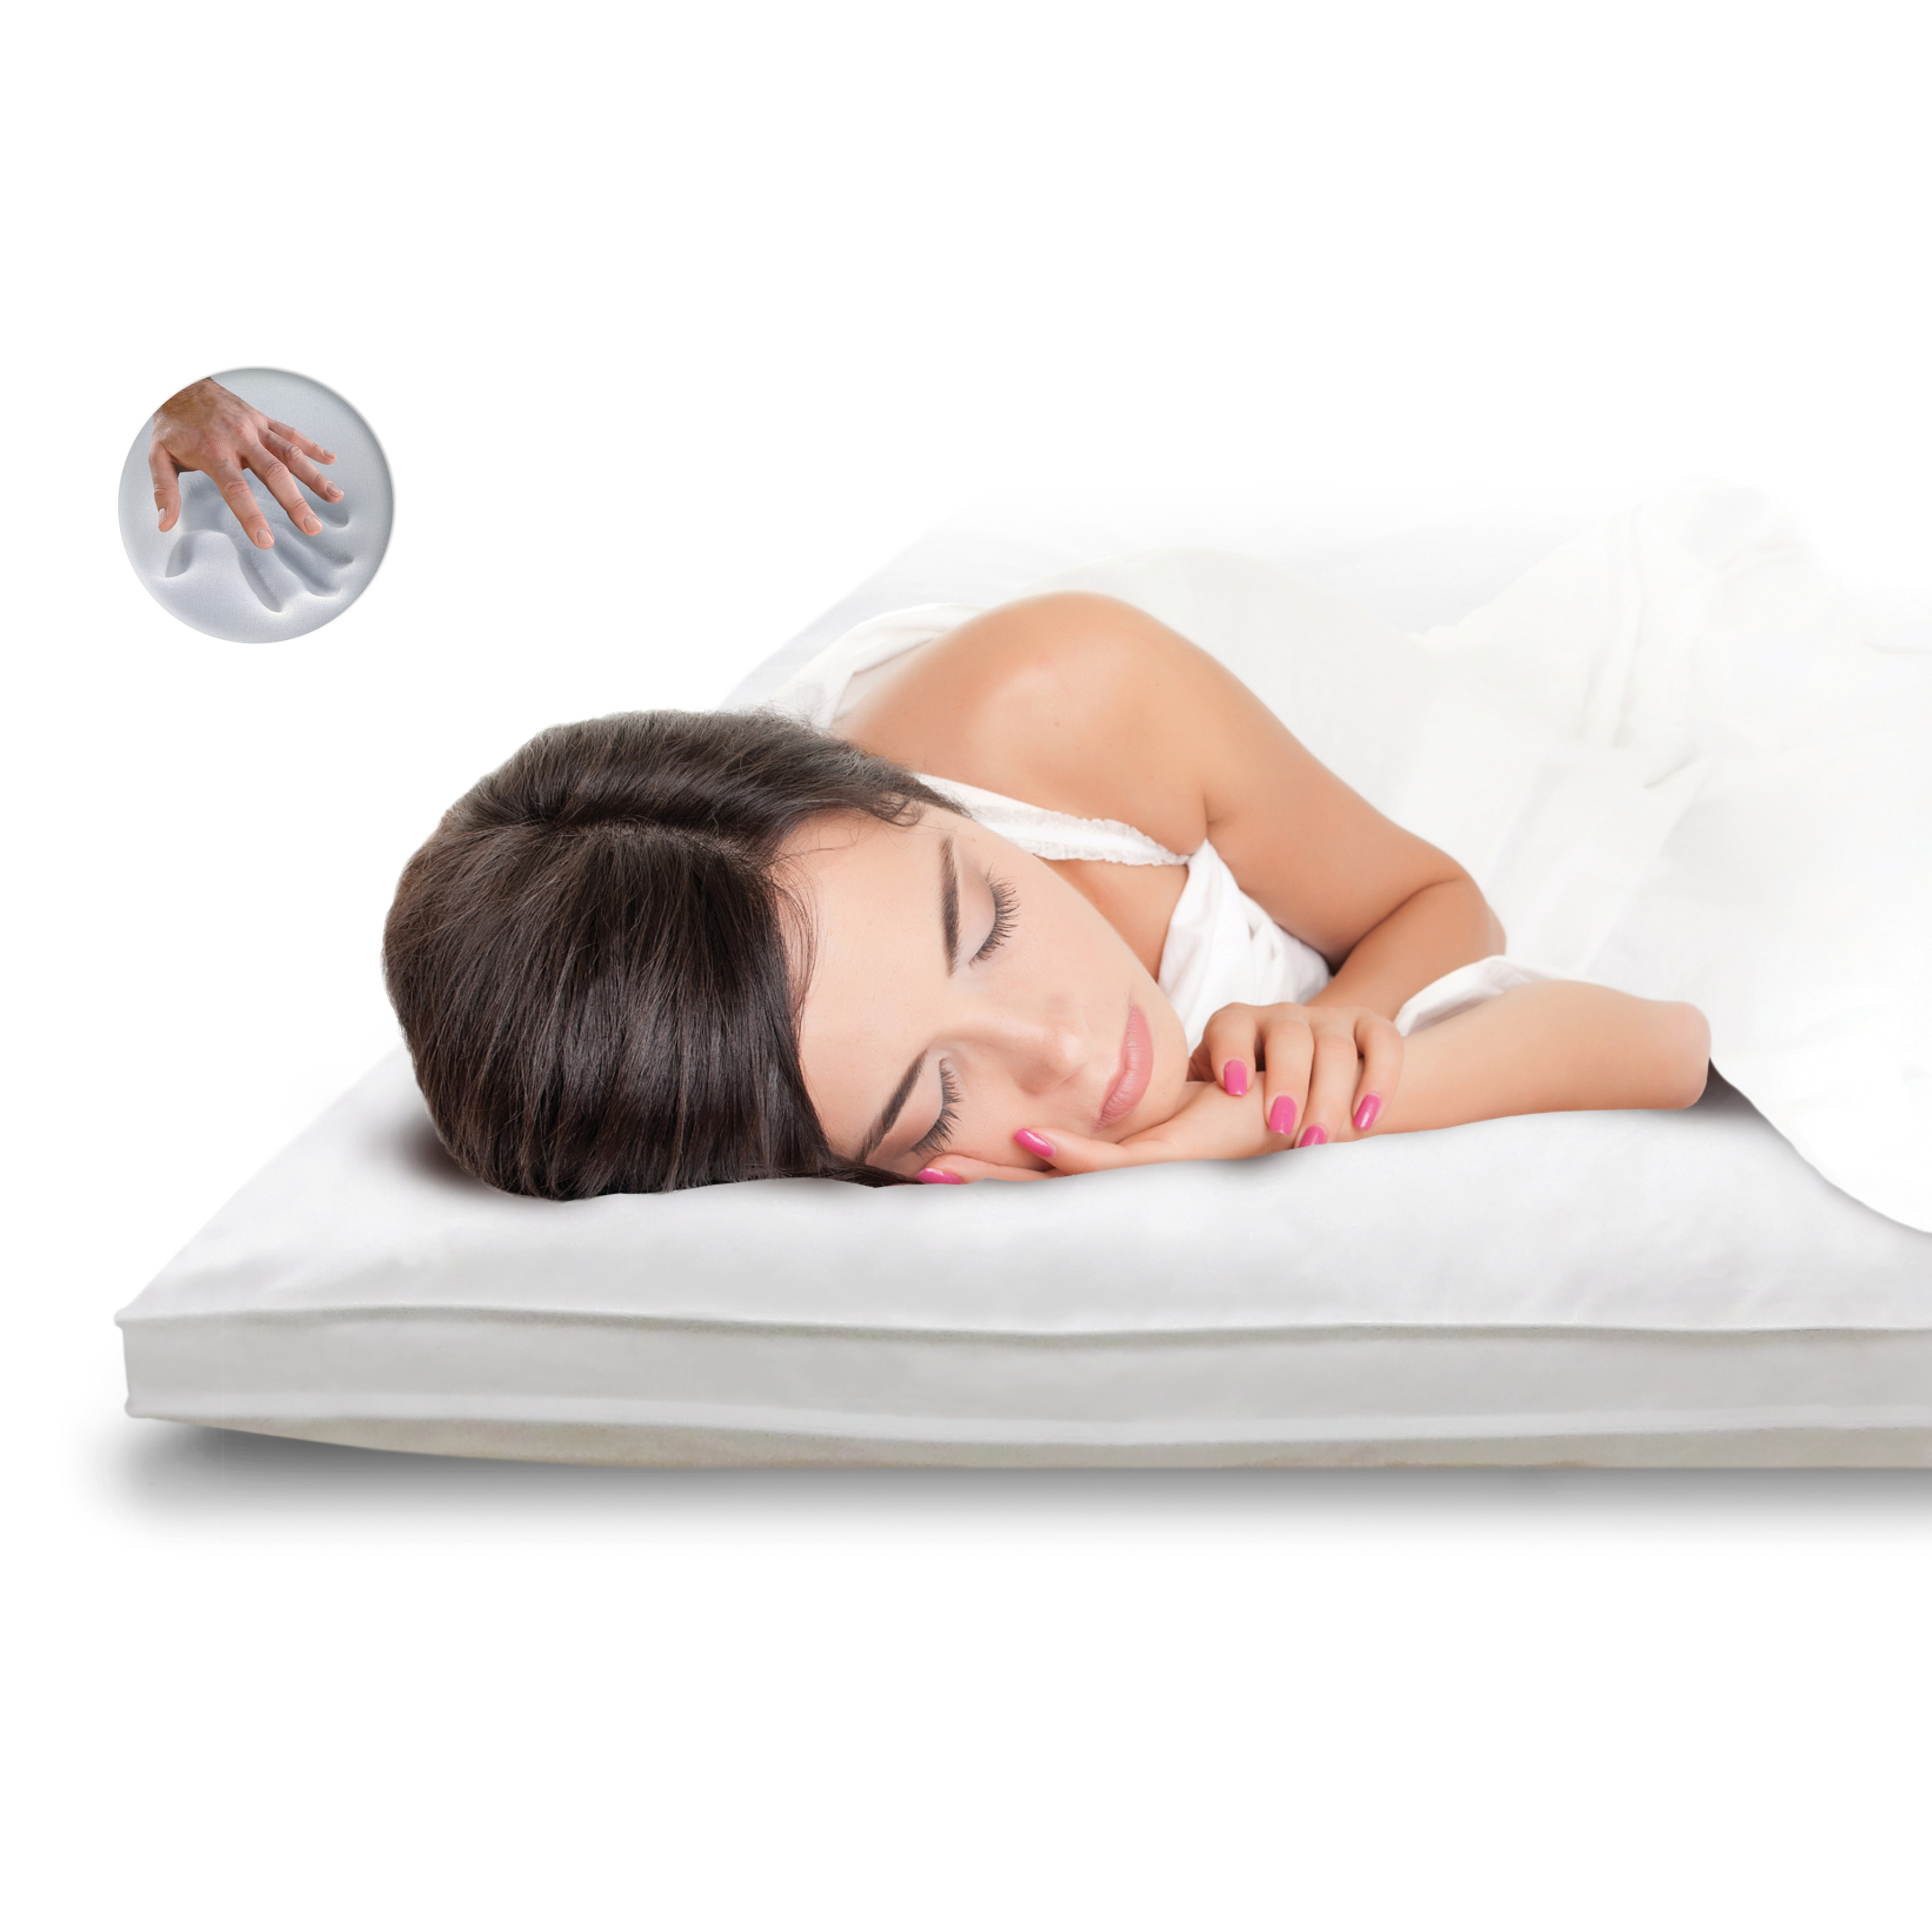 foam shipping product overstock mattress memory fiber swisslux bedding blend classic today topper bath free and inch